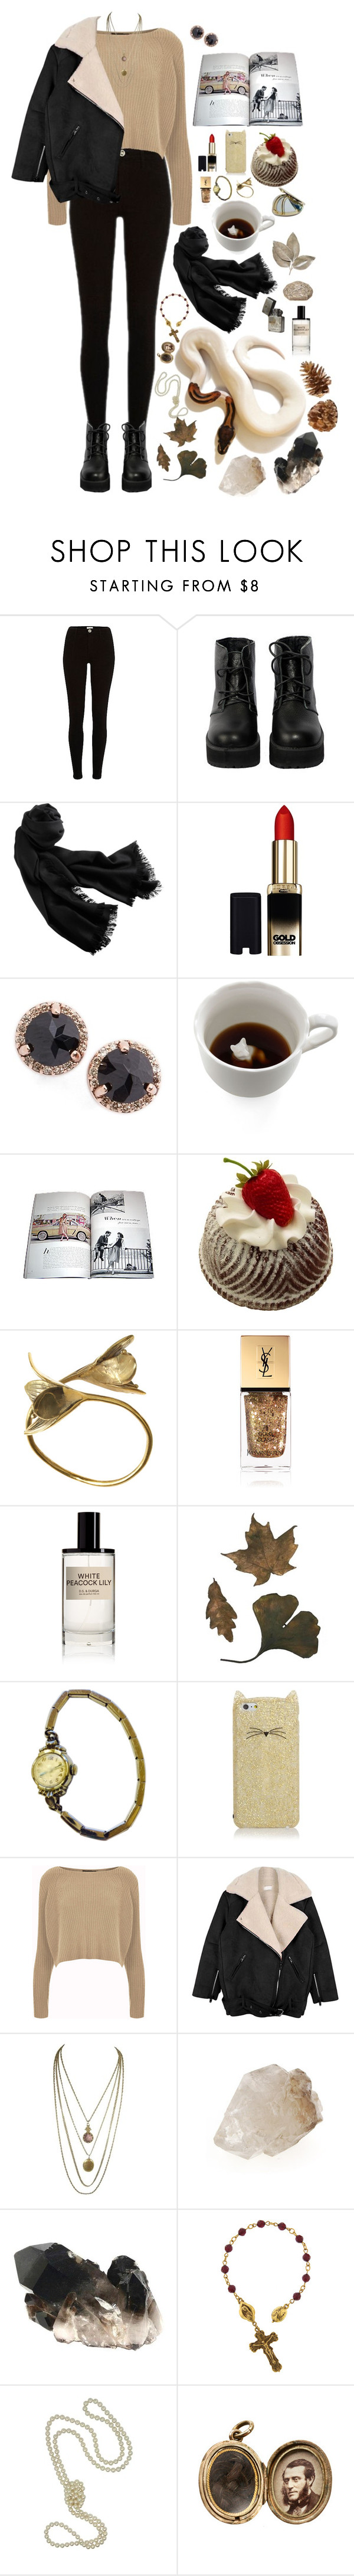 """""""Vir Voyt"""" by alice-tellur ❤ liked on Polyvore featuring The WhitePepper, Cole Haan, L'Oréal Paris, Anna Sheffield, Dot & Bo, Marc Jacobs, Monserat De Lucca, Yves Saint Laurent, D.S. & DURGA and Elgin"""